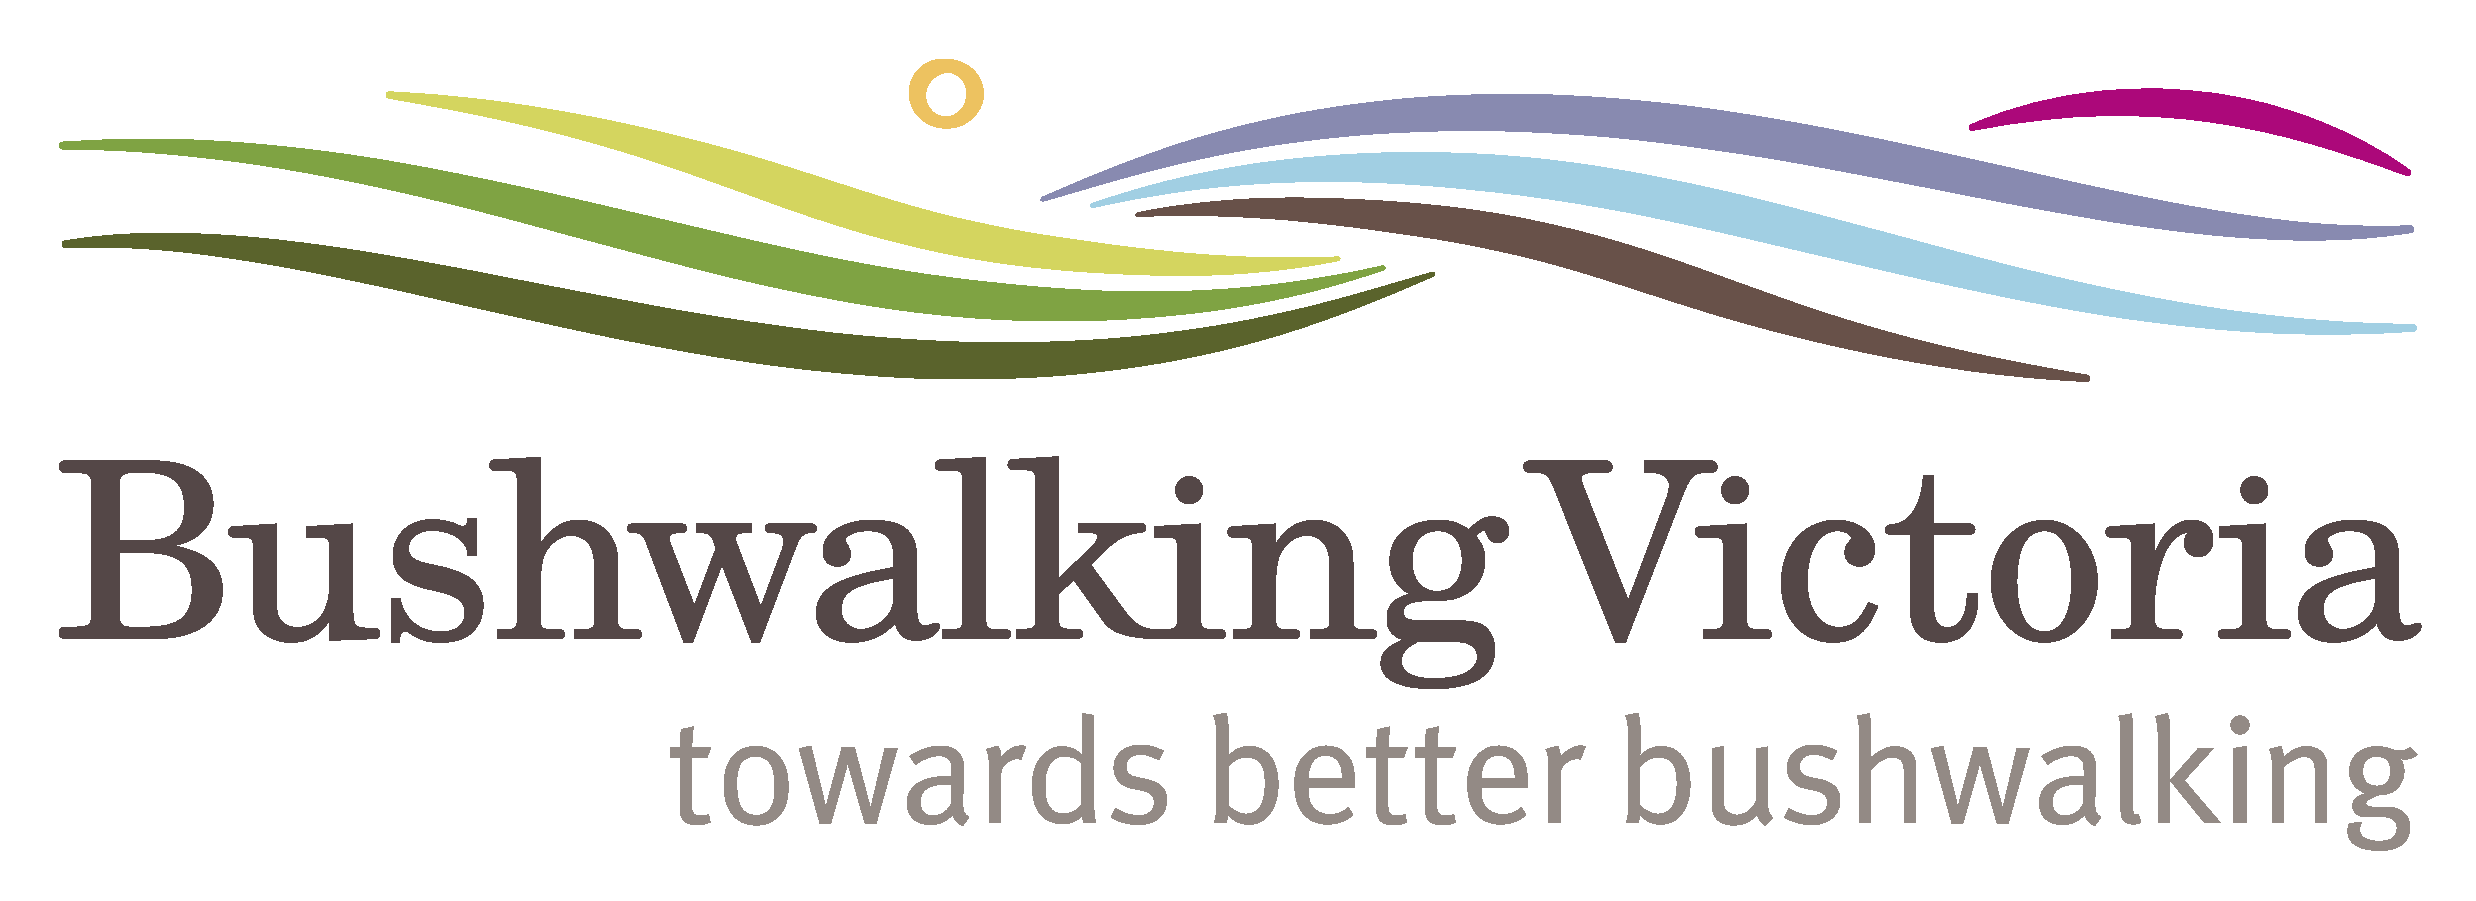 Bushwalking Vic website colour logo 1